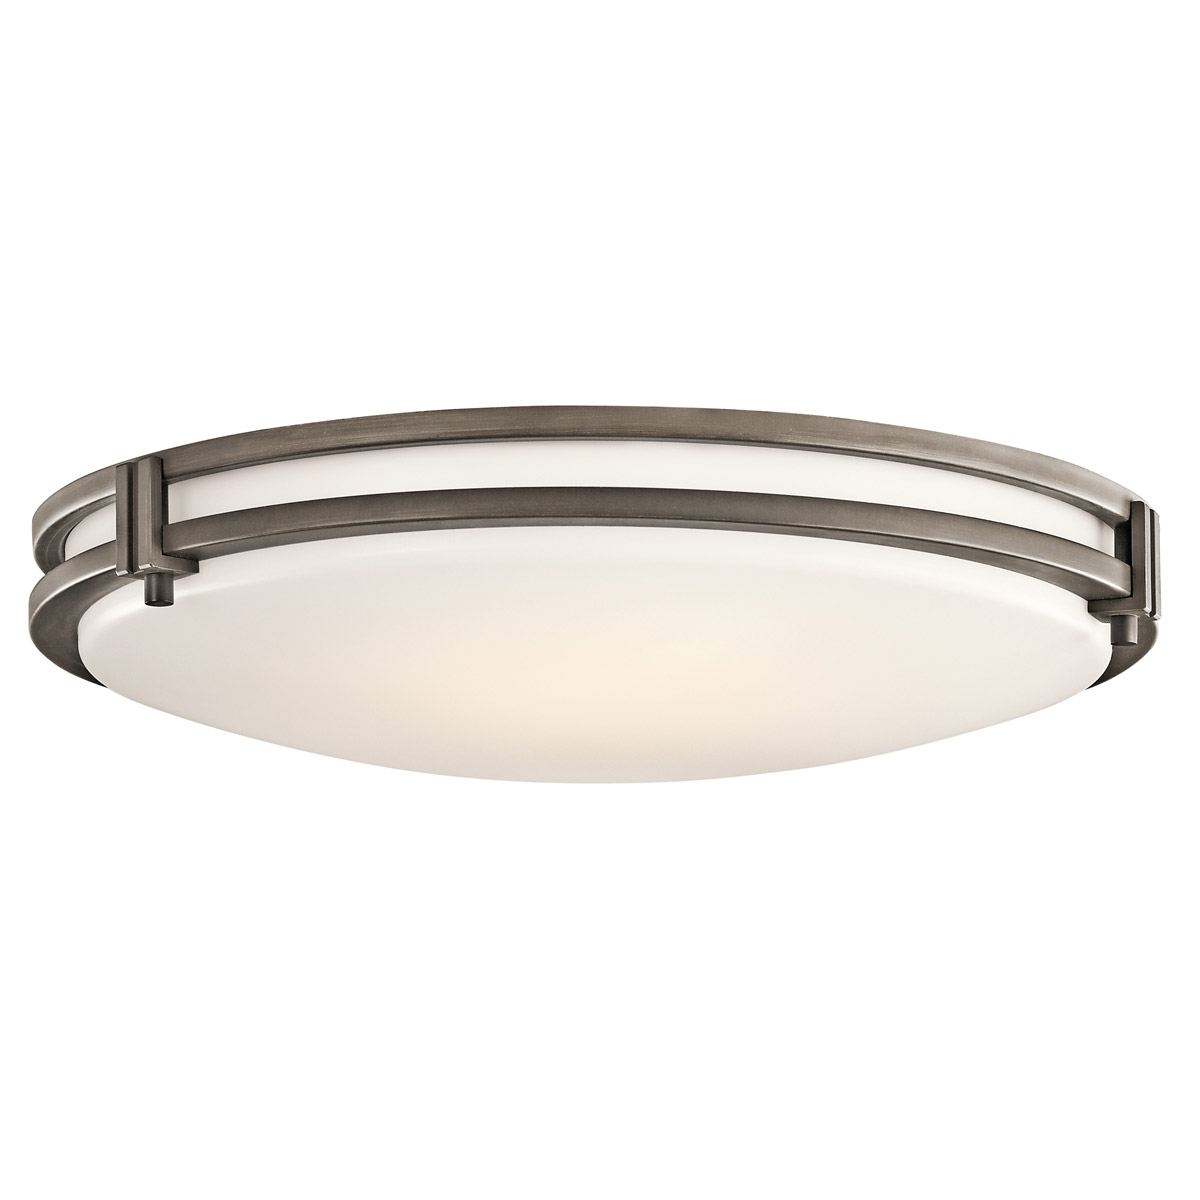 Kichler 10828OZ Flush Mount Ceiling Fixture